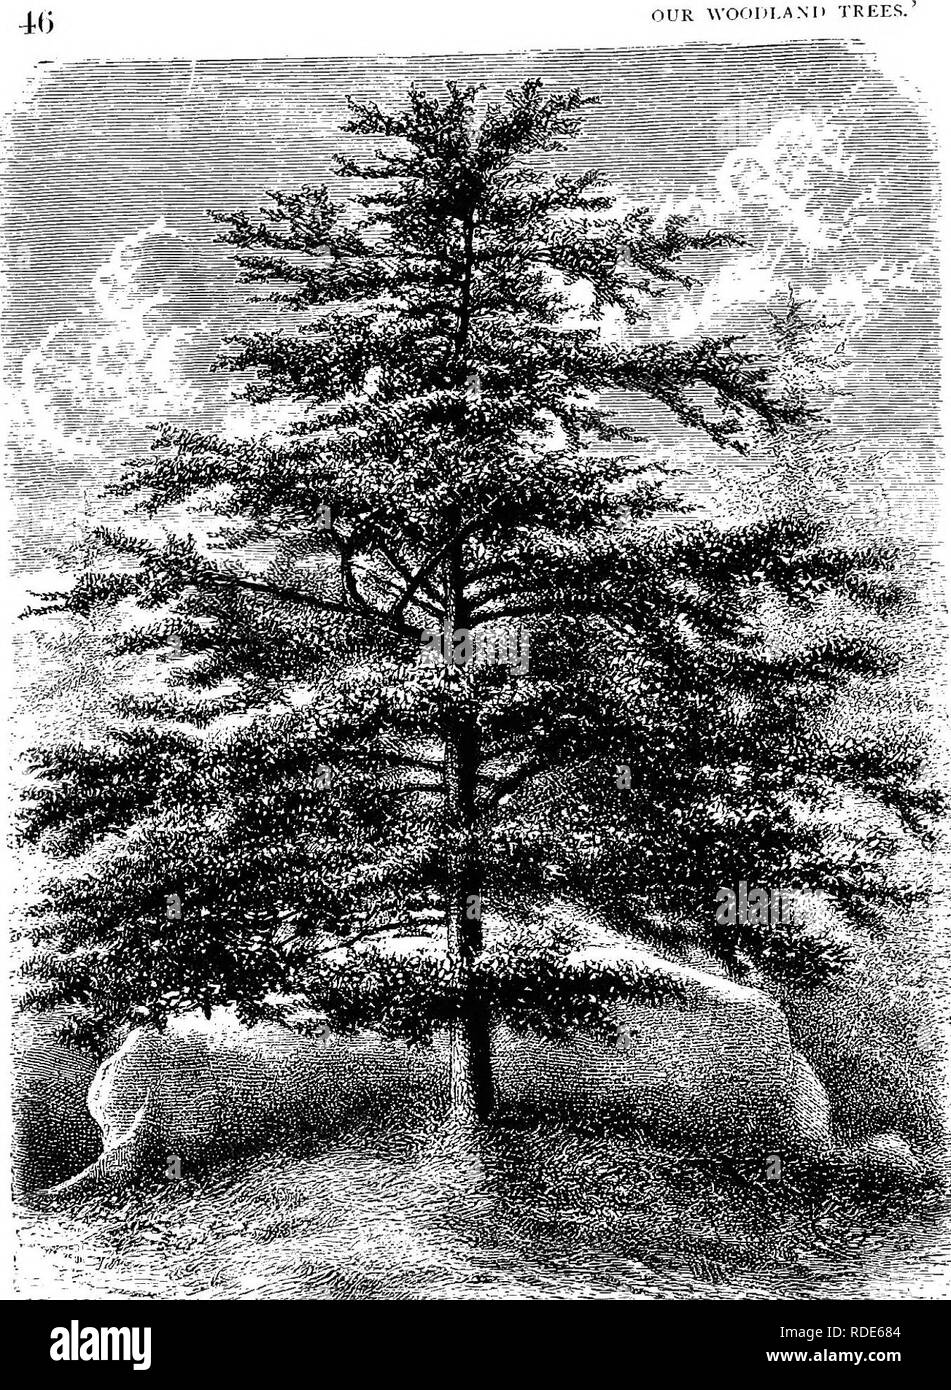 """. Our woodland trees . Trees; Trees. Jlicre is so much of stability and permanence in tlie niialitius wliicll distinguish Tiee= Trom other and more fragile kinds ol  egetation.' [â ^'""""i'""""'? 47-. Please note that these images are extracted from scanned page images that may have been digitally enhanced for readability - coloration and appearance of these illustrations may not perfectly resemble the original work.. Heath, Francis George, 1843-1913. London : Sampson Low, Marston, Searle, & Rivington - Stock Image"""